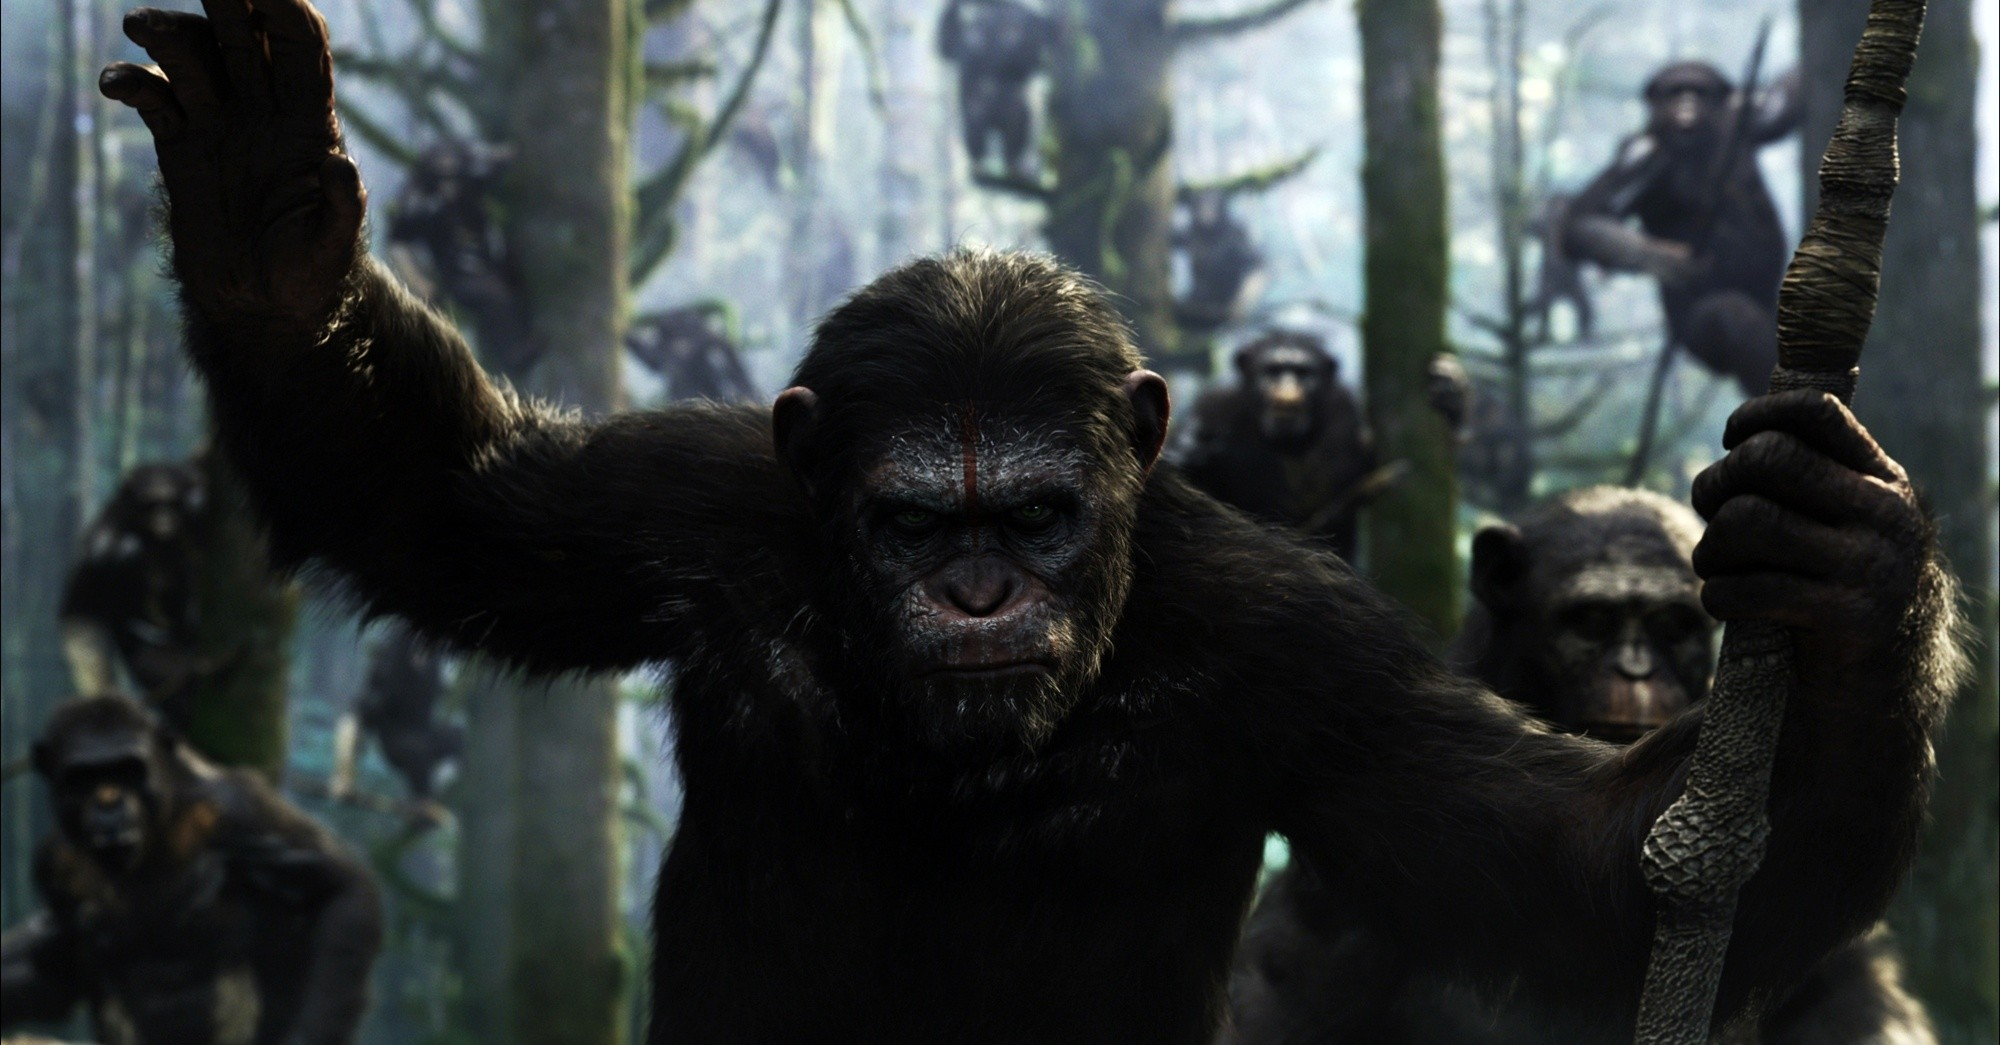 'Dawn of the Planet of the Apes' Gets First Trailer